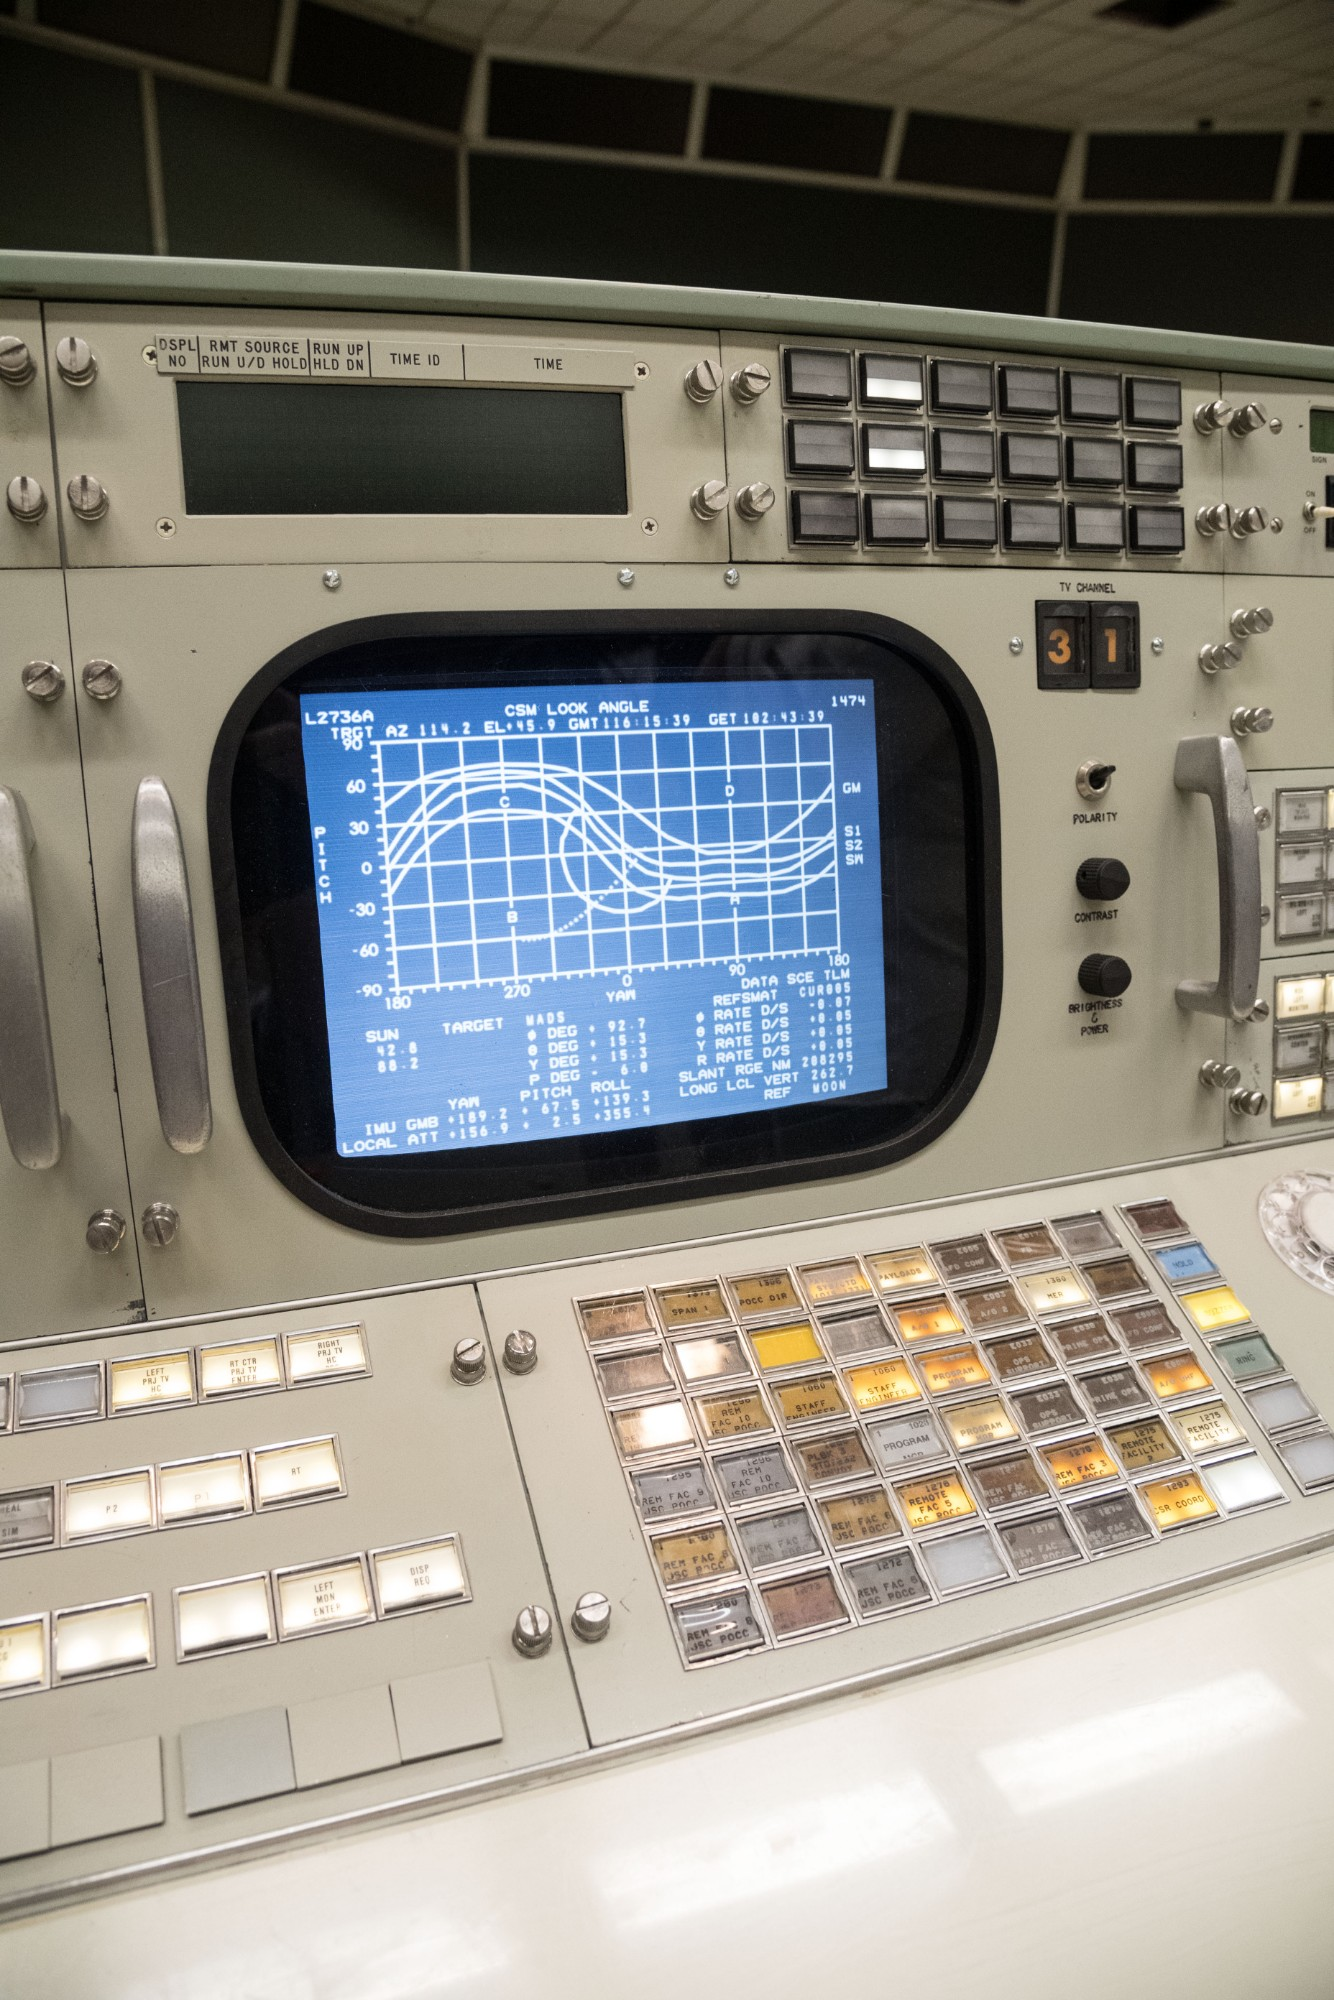 A monitor and control panel